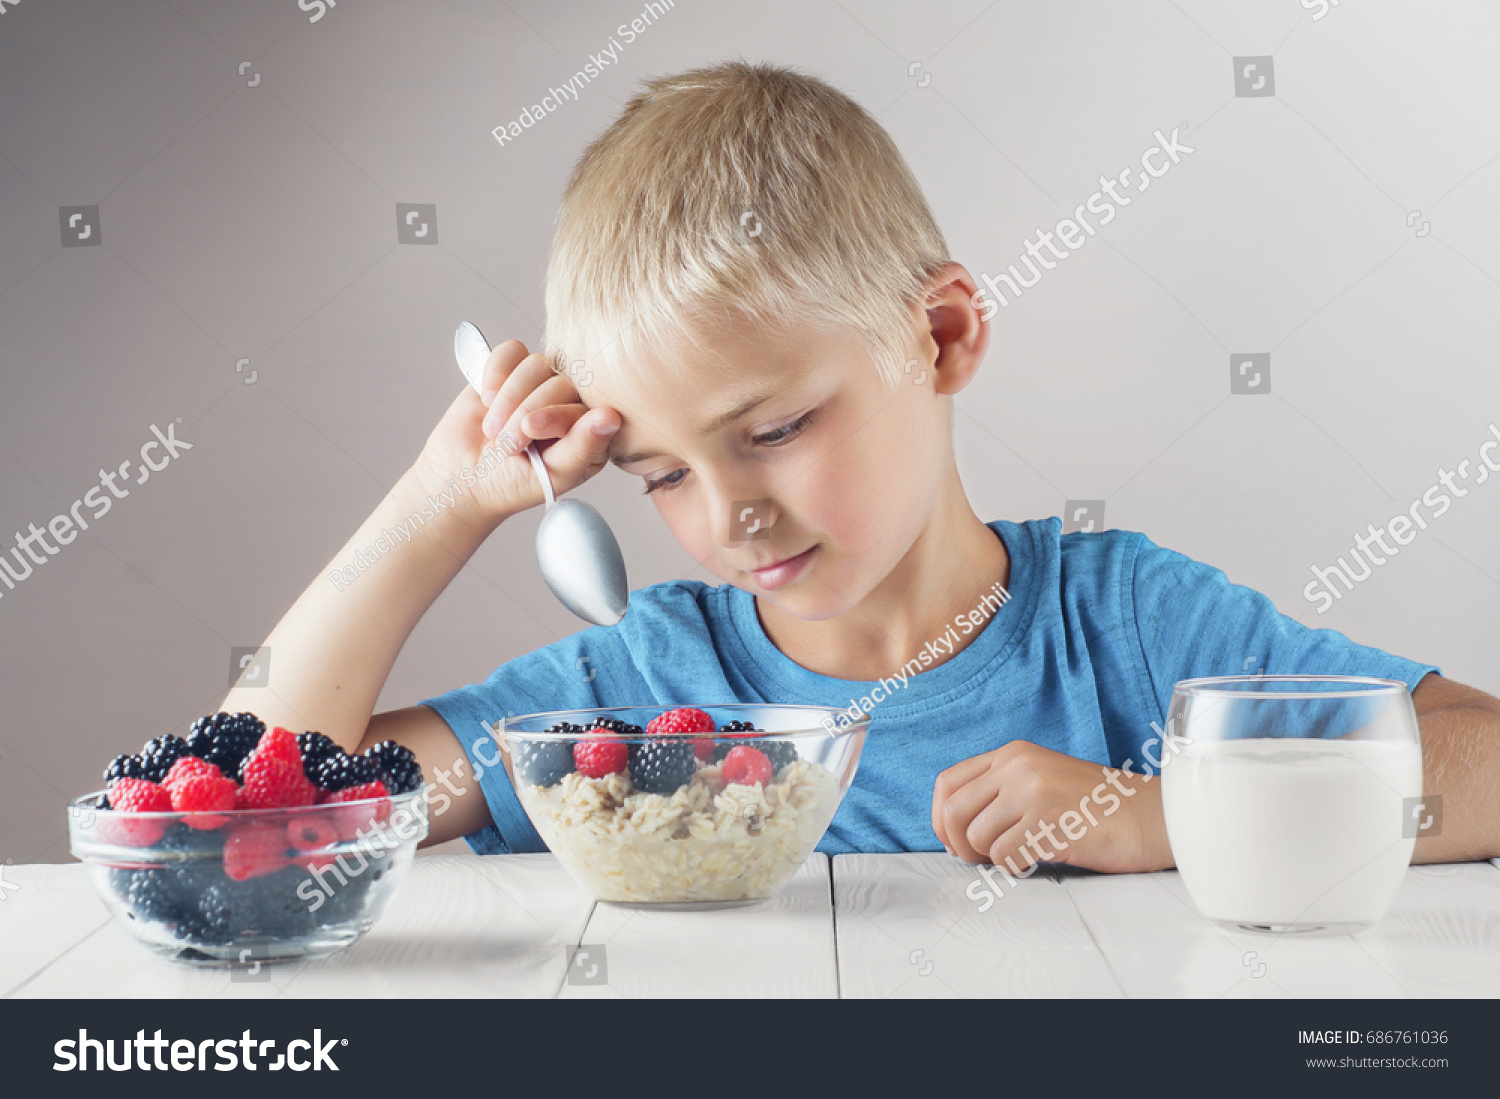 A child does not eat breakfast - what to do and what to cook 60